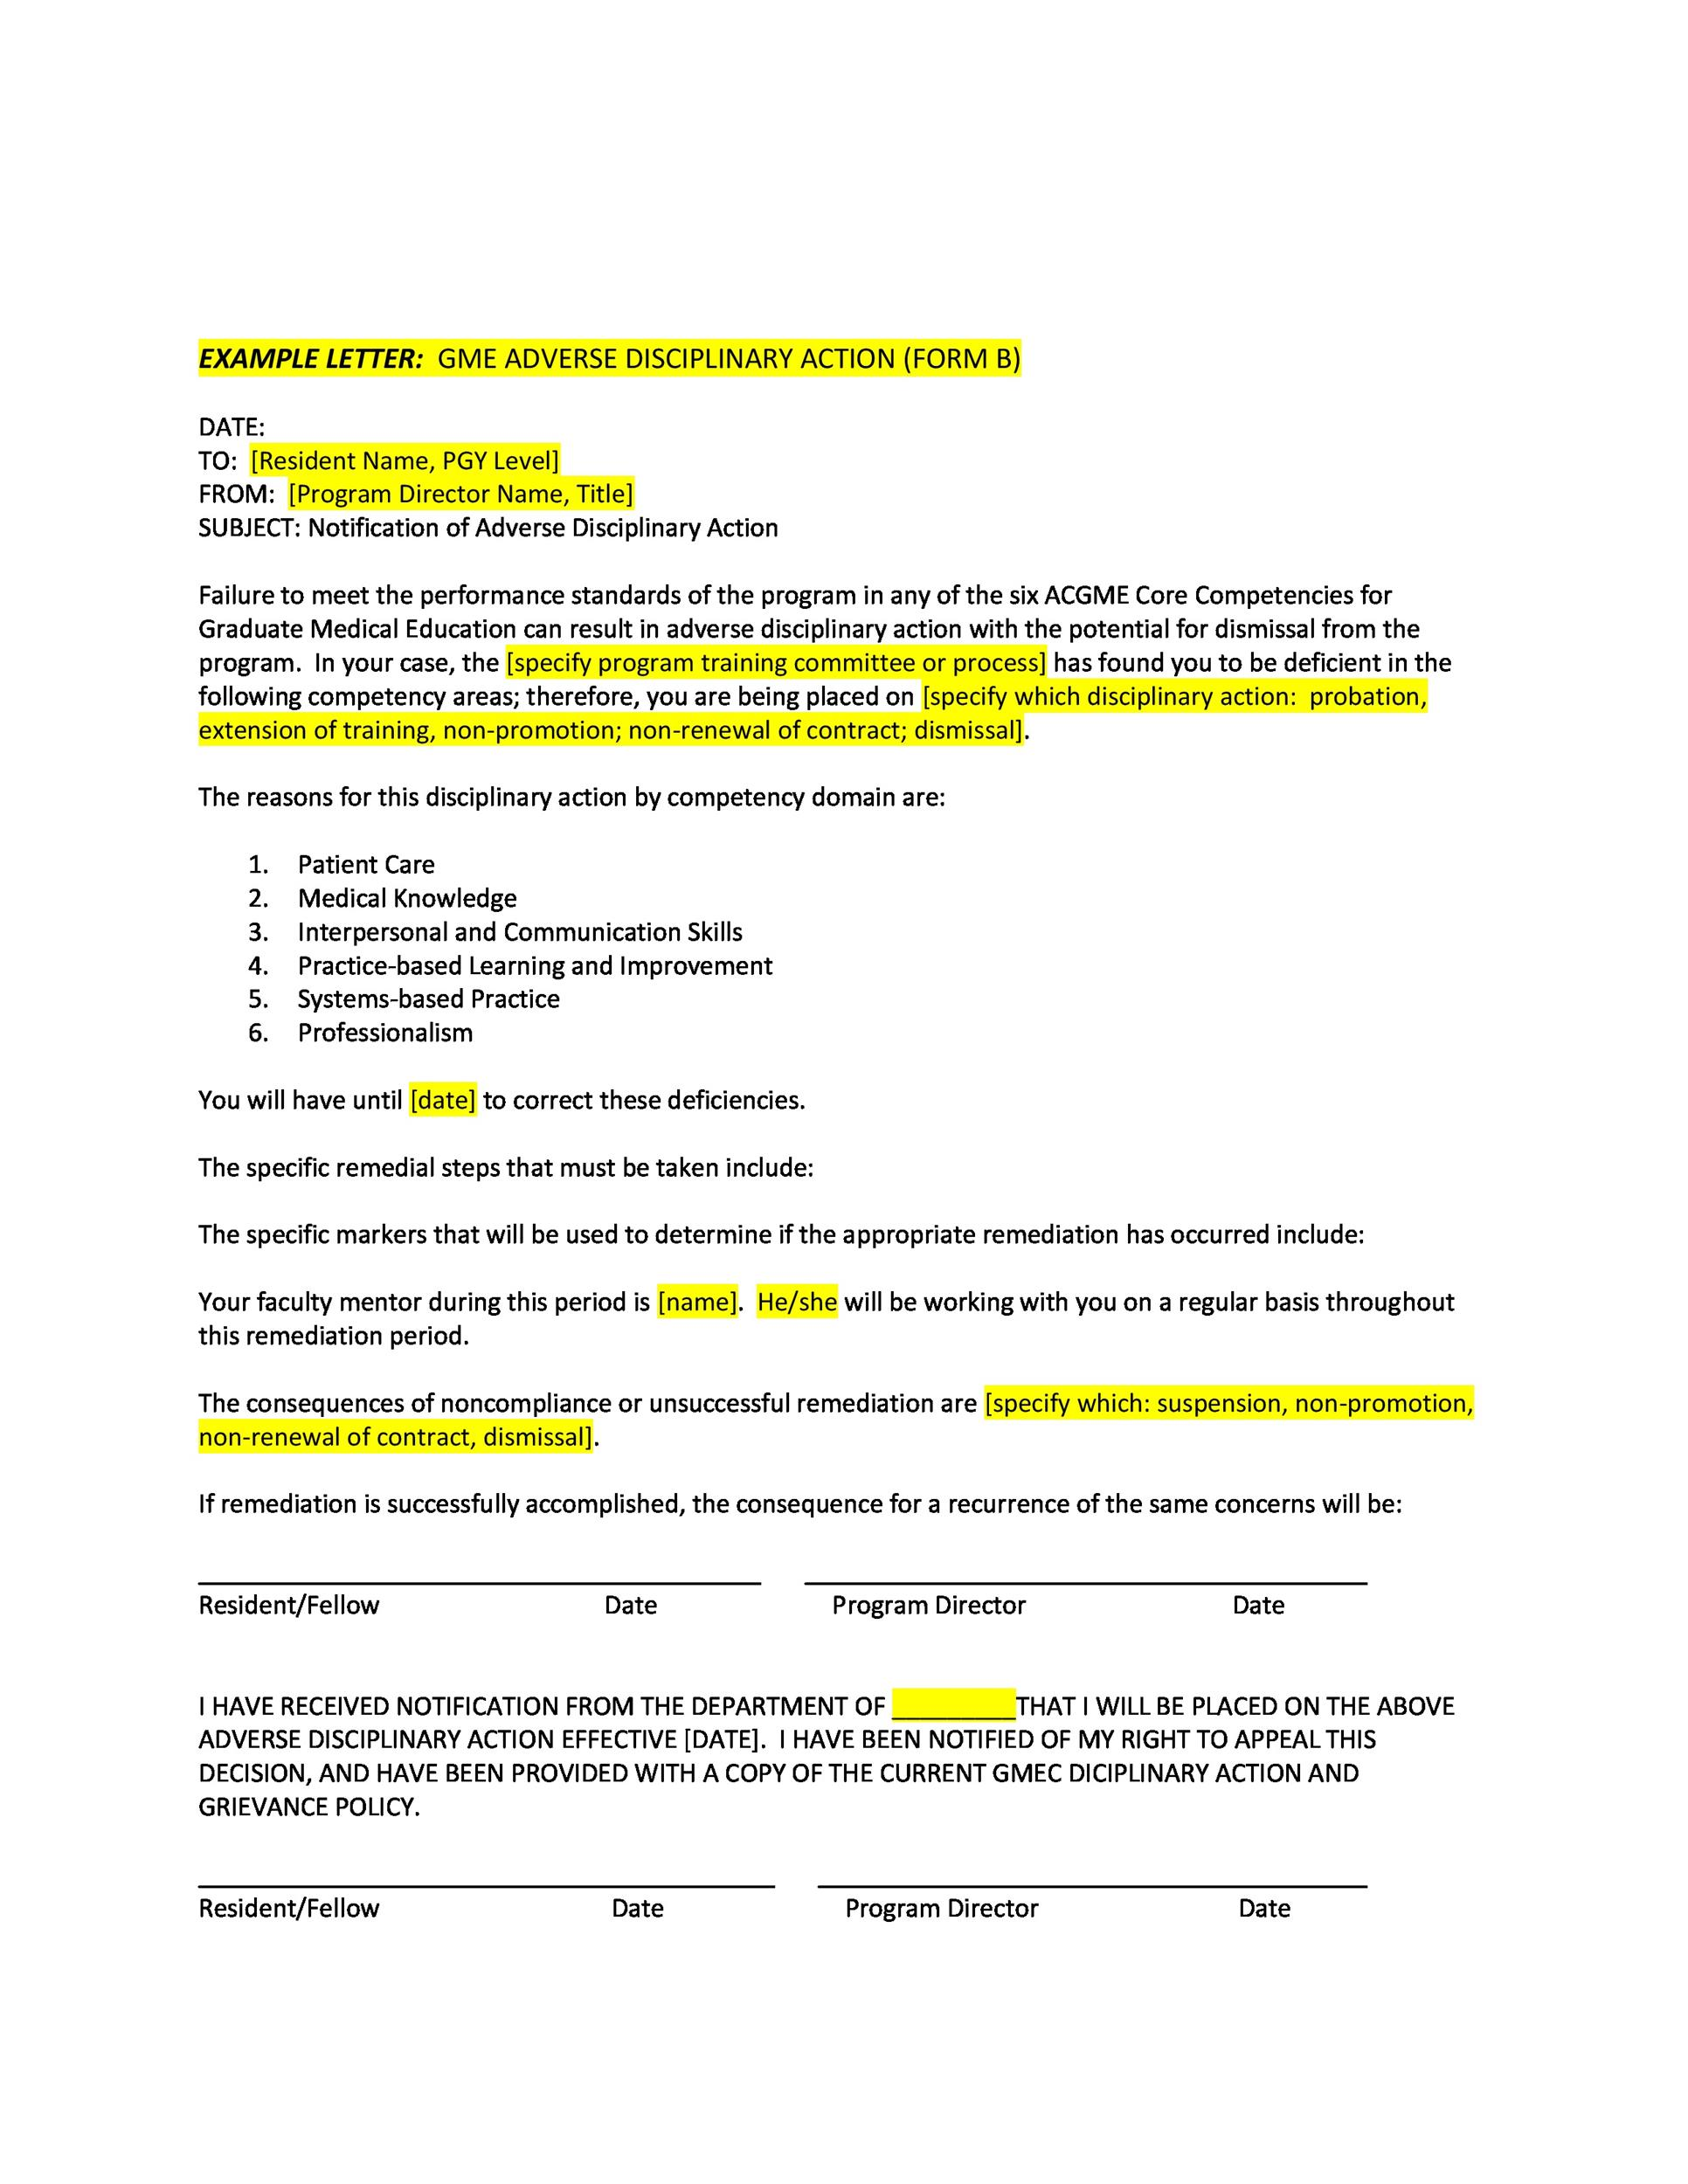 How To Write A Employee Write Up Form – Employee Write Up Form